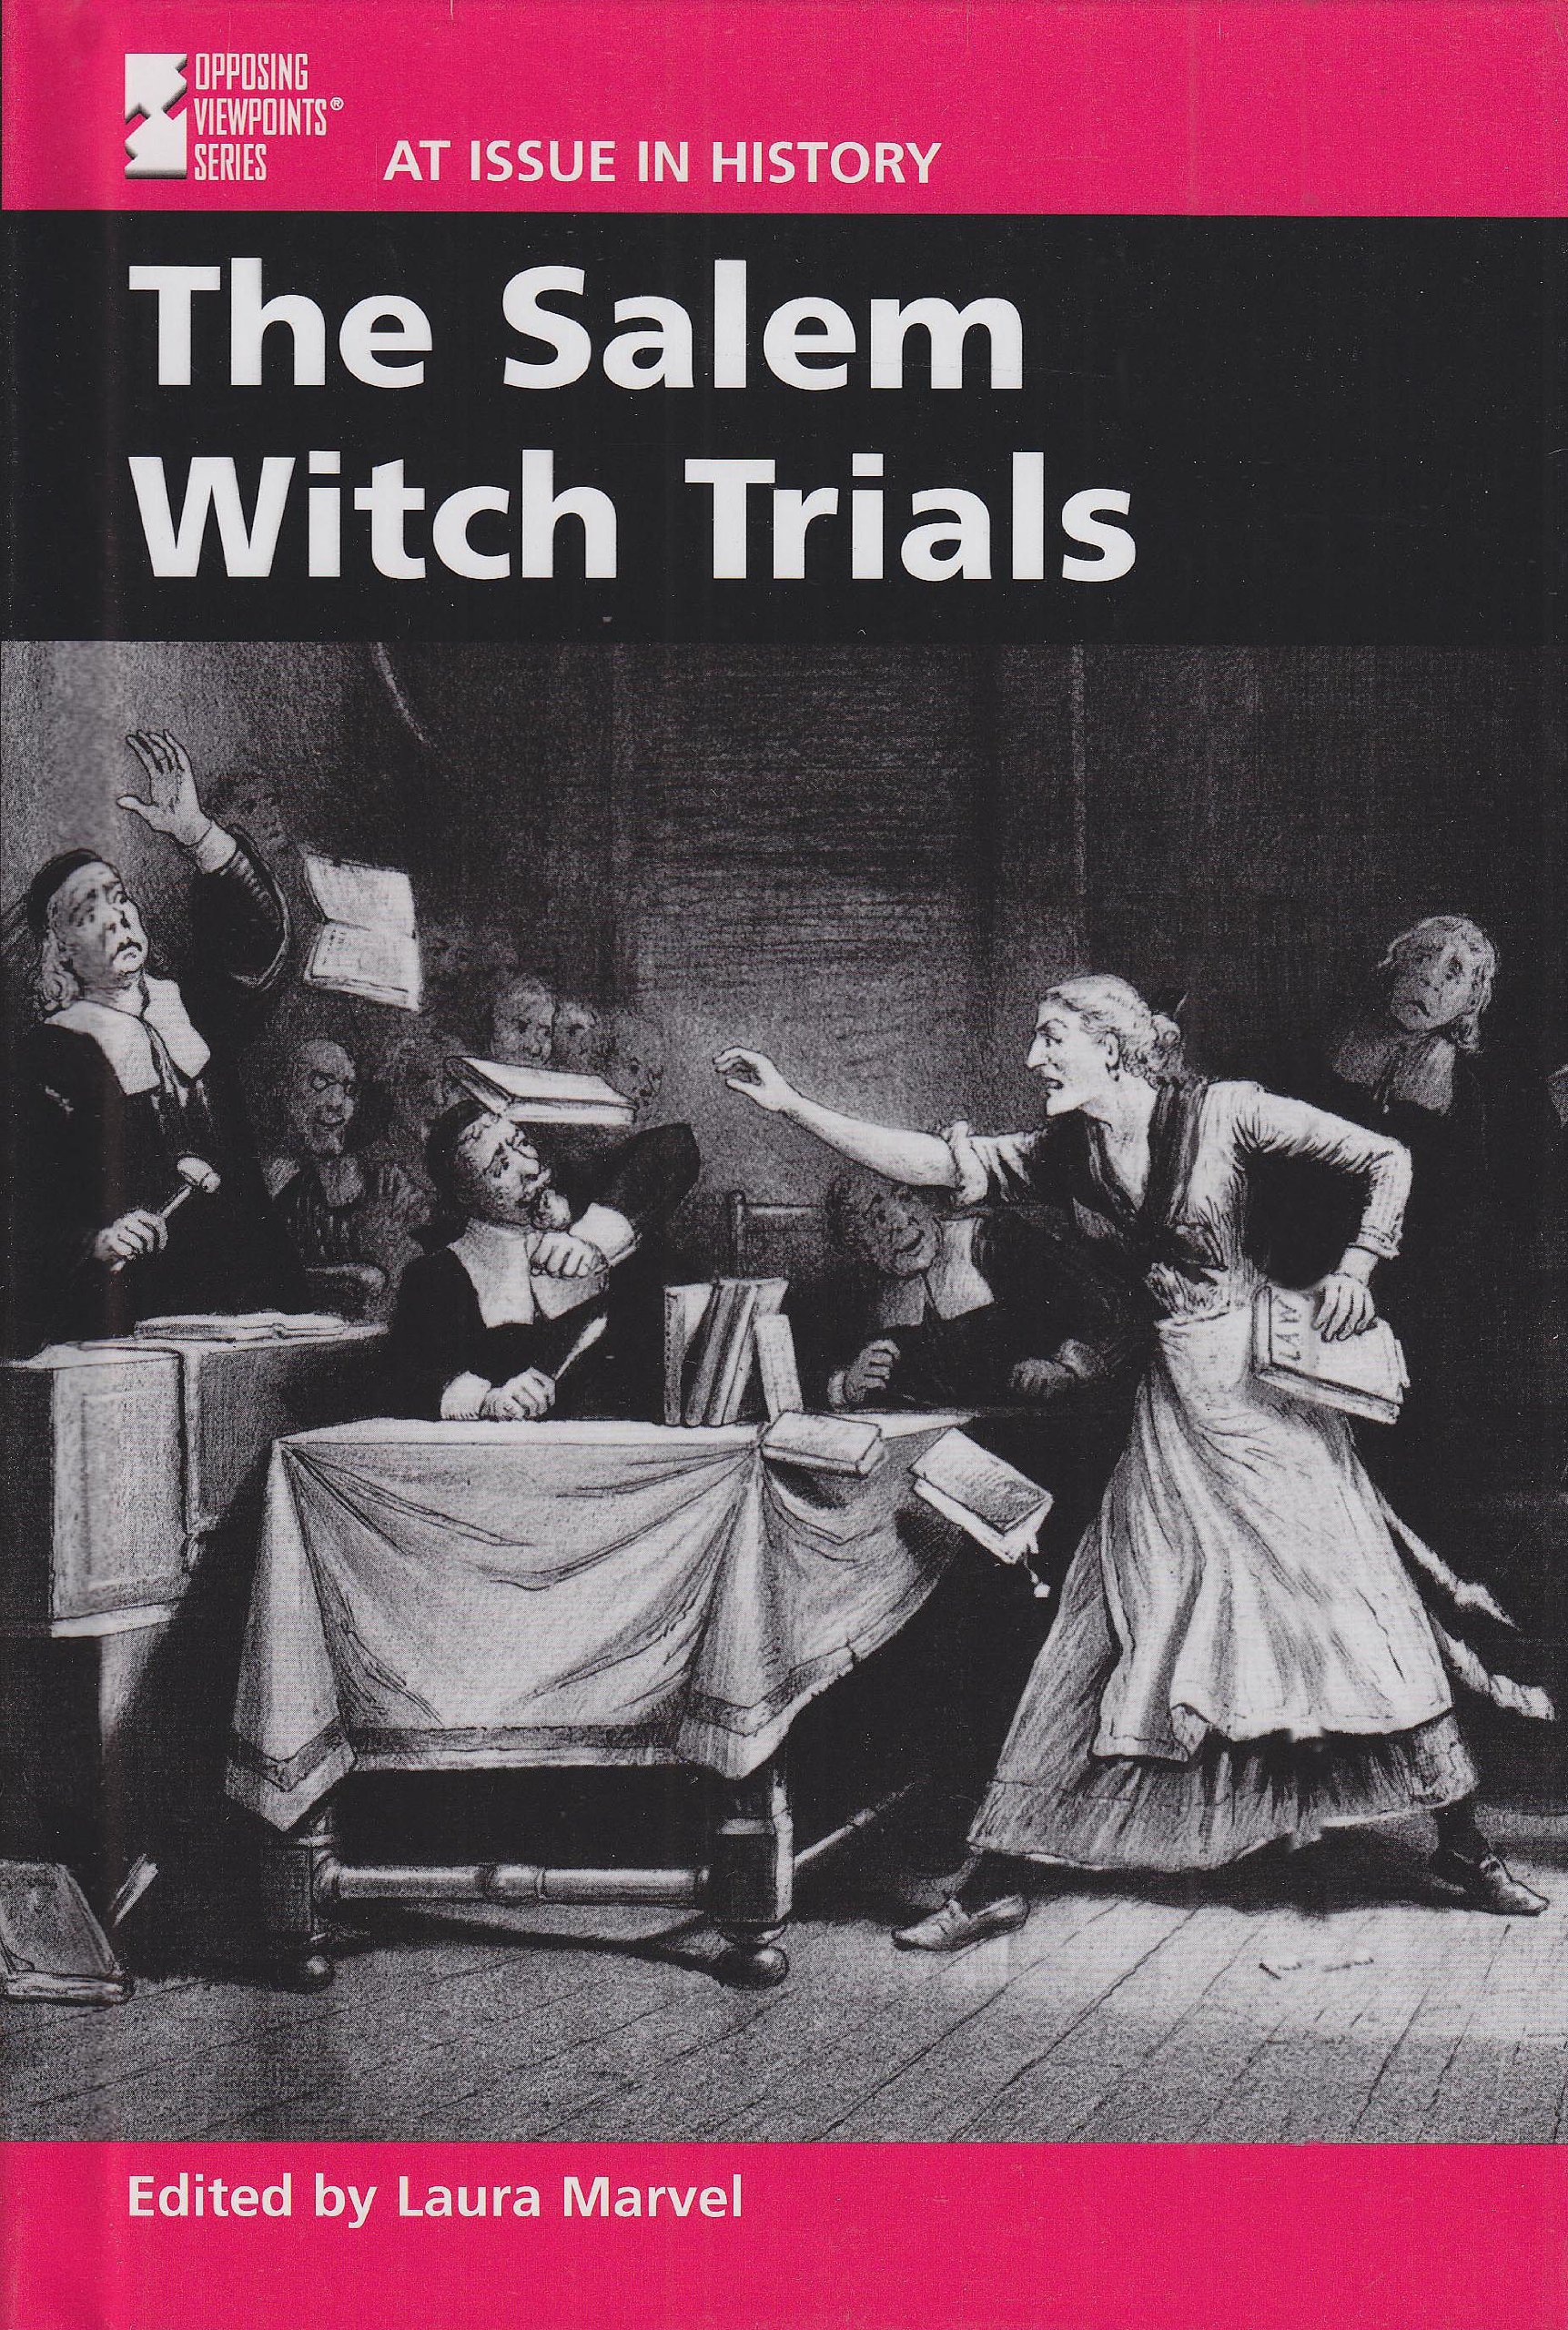 At Issue in History - The Salem Witch Trials (hardcover edition) ebook